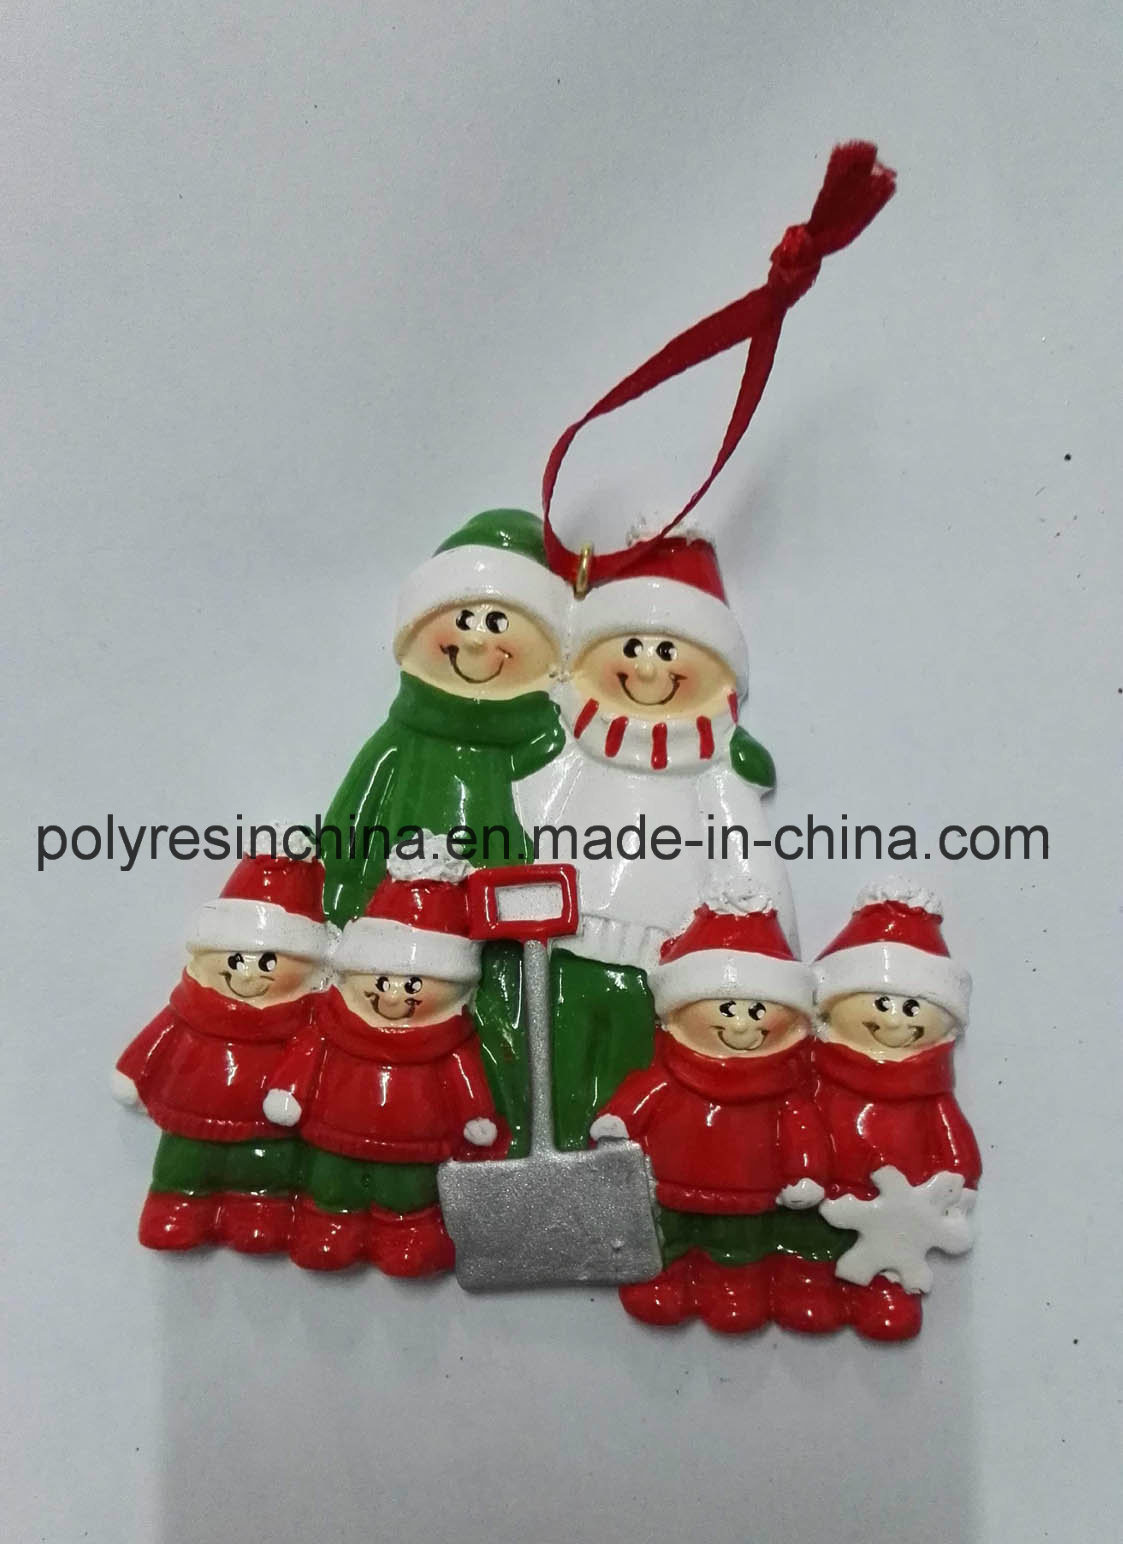 Resin Tree Decoration of Personalized Christmas Ornaments